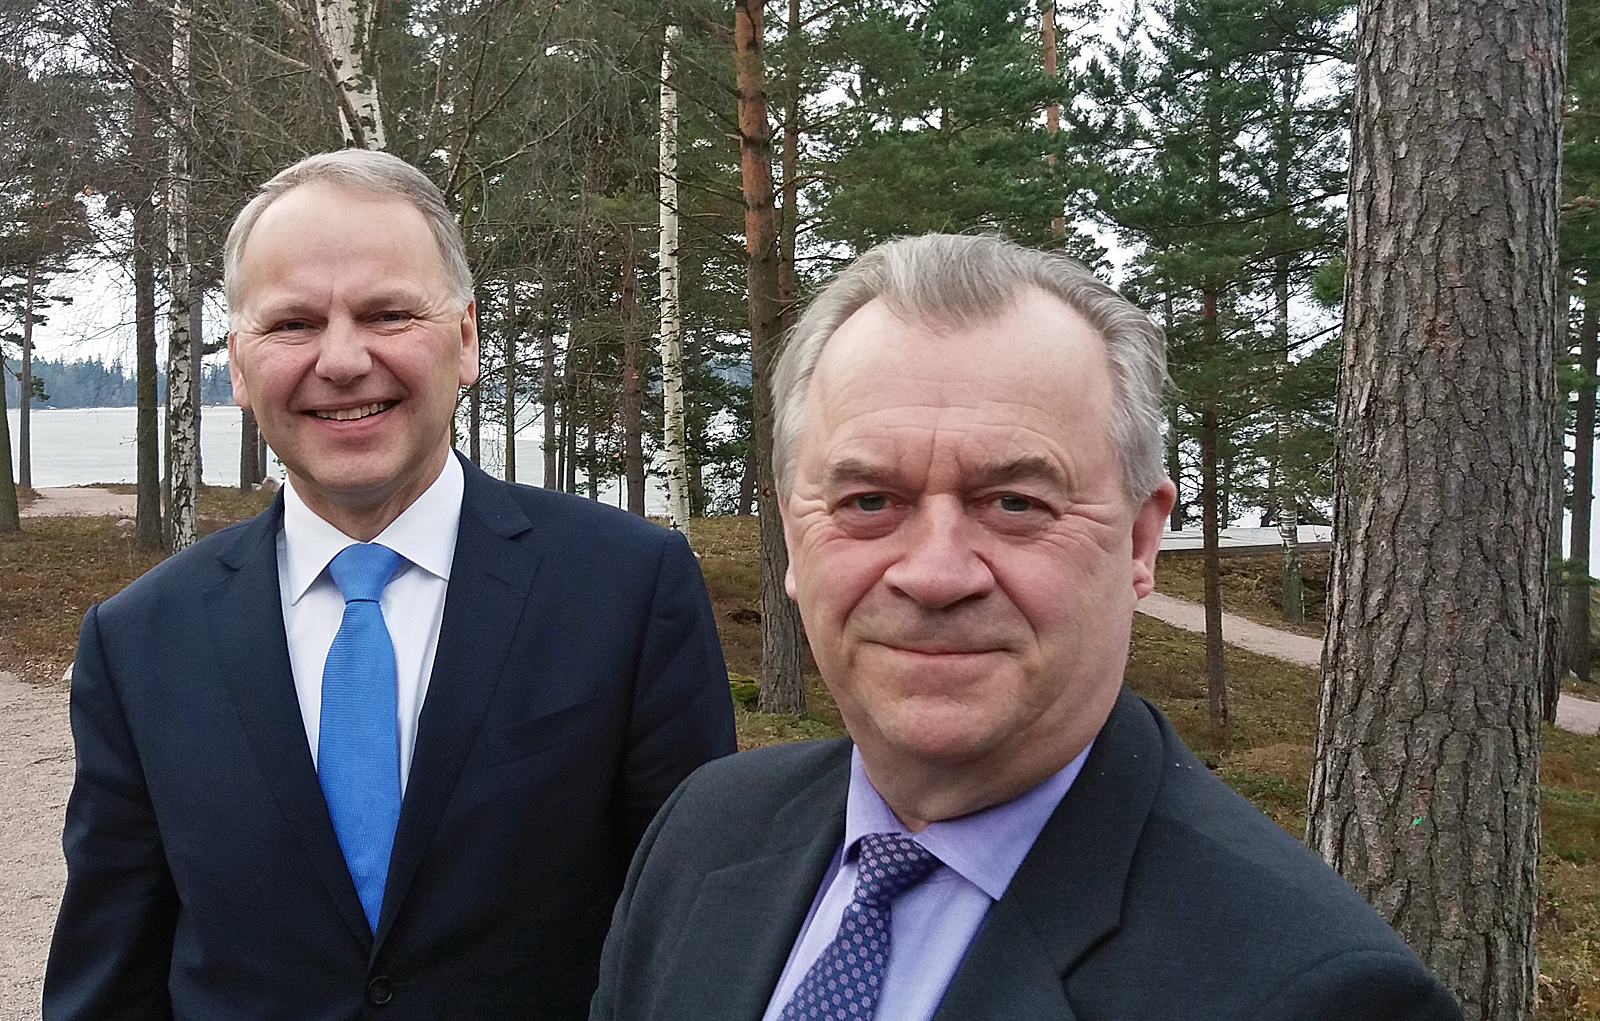 In November, Swedish Minister for Rural Affairs, Sven-Erik Bucht, and his Finnish counterpart, Jari Leppä, will open the Forest Academy for Decision-Makers, which will acquaint participants with the sustainable forestry of the Nordic countries. Photo: Hannes Mäntyranta